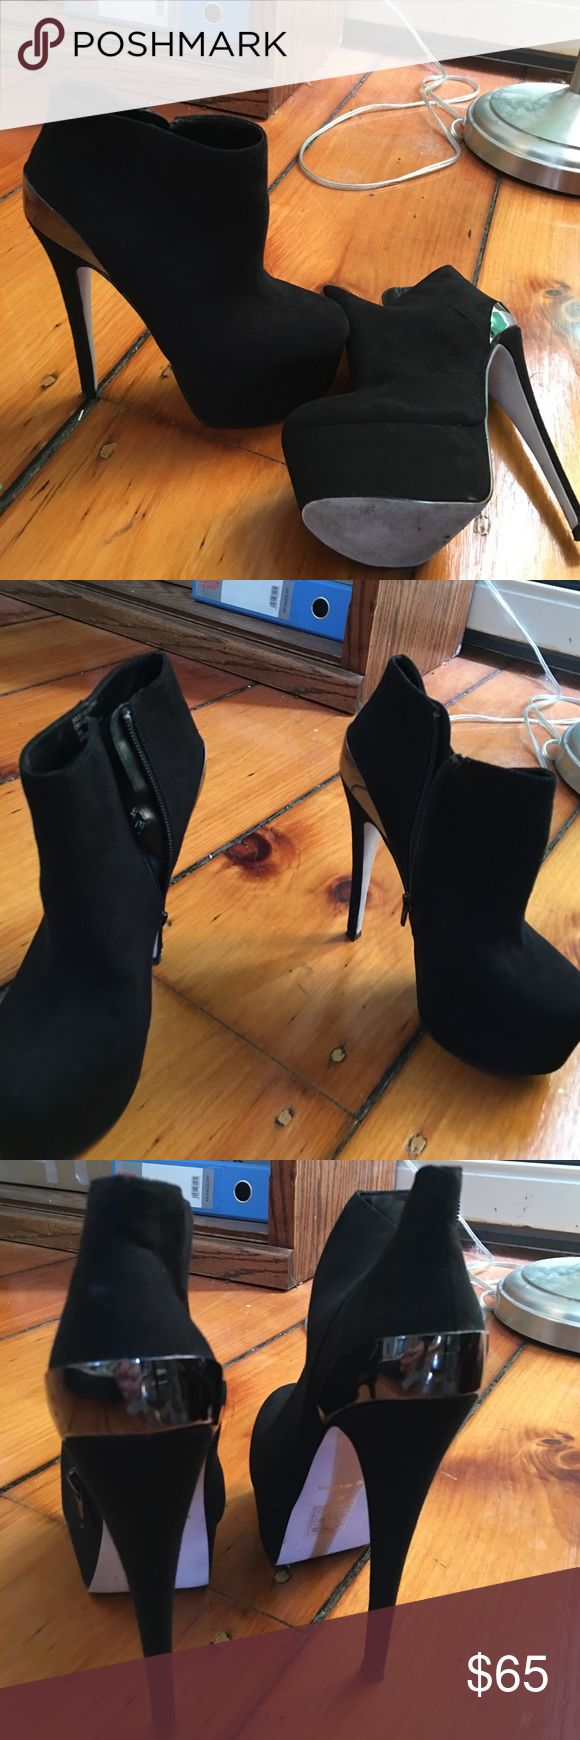 Kurt Geiger 160mm booties Caravela 36 Worn once or twice. In excellent used condition. Retail $200. 160 mm heel with a 2 in platform. Very similar style to Christian louboutin's 160 mm booties. Super comfy Kurt Geiger Shoes Ankle Boots & Booties